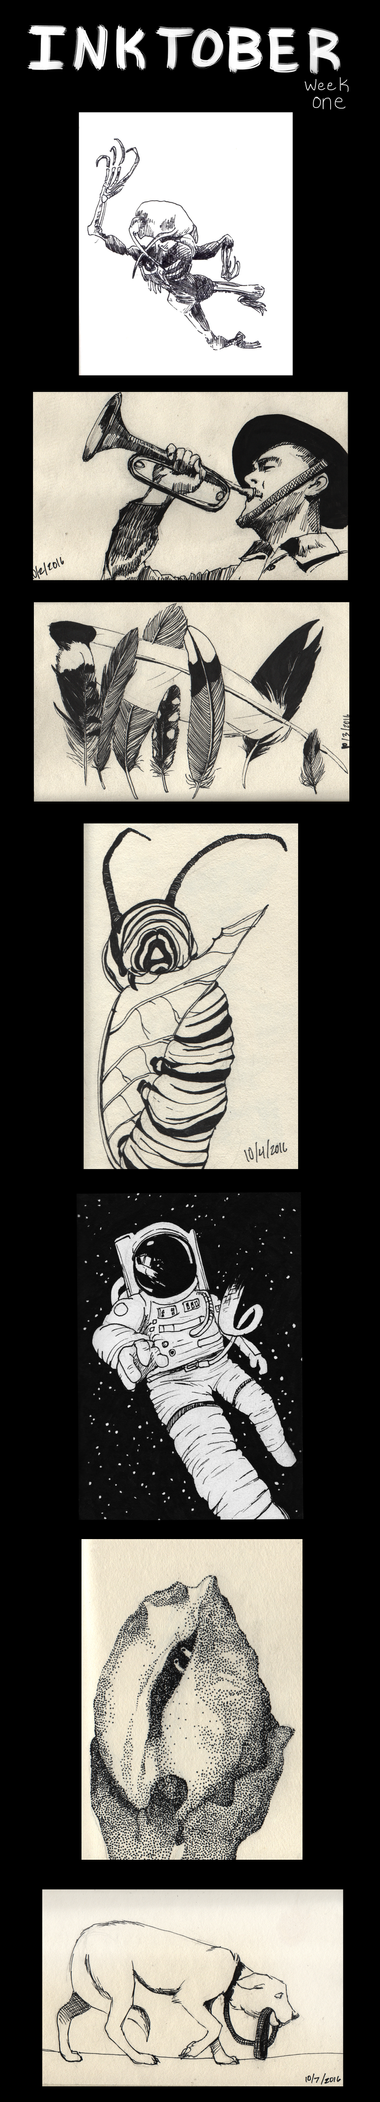 Inktober 1/4 by A-Hippocampus